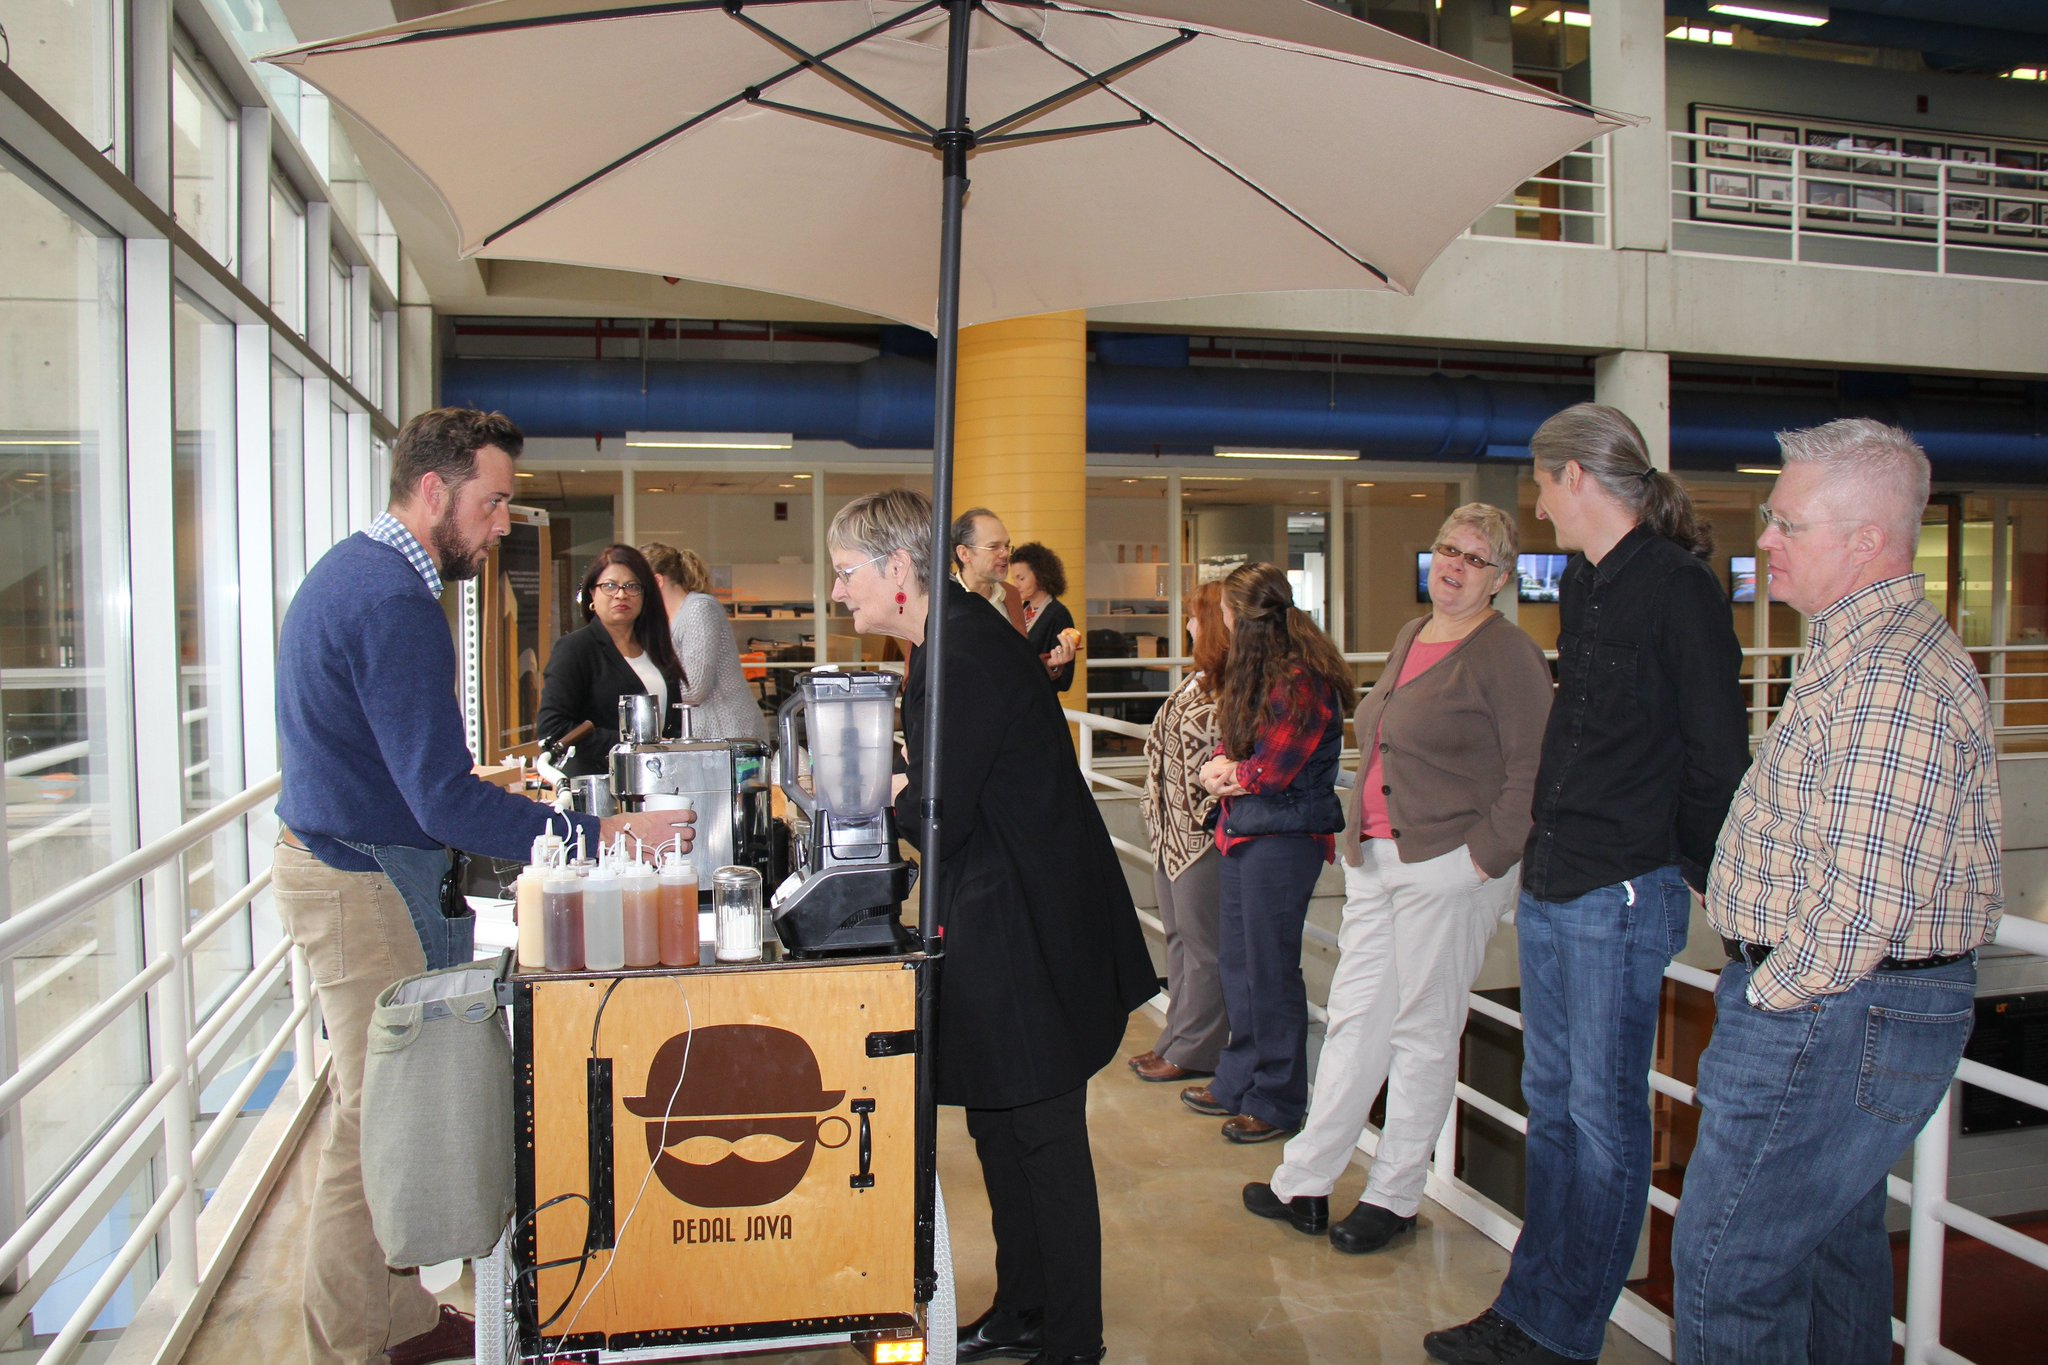 Today faculty and staff are enjoying coffee from @pedaljava and donuts from @DuckDonuts. Happy Faculty Appreciation Week! https://t.co/ZdBa20hE1e